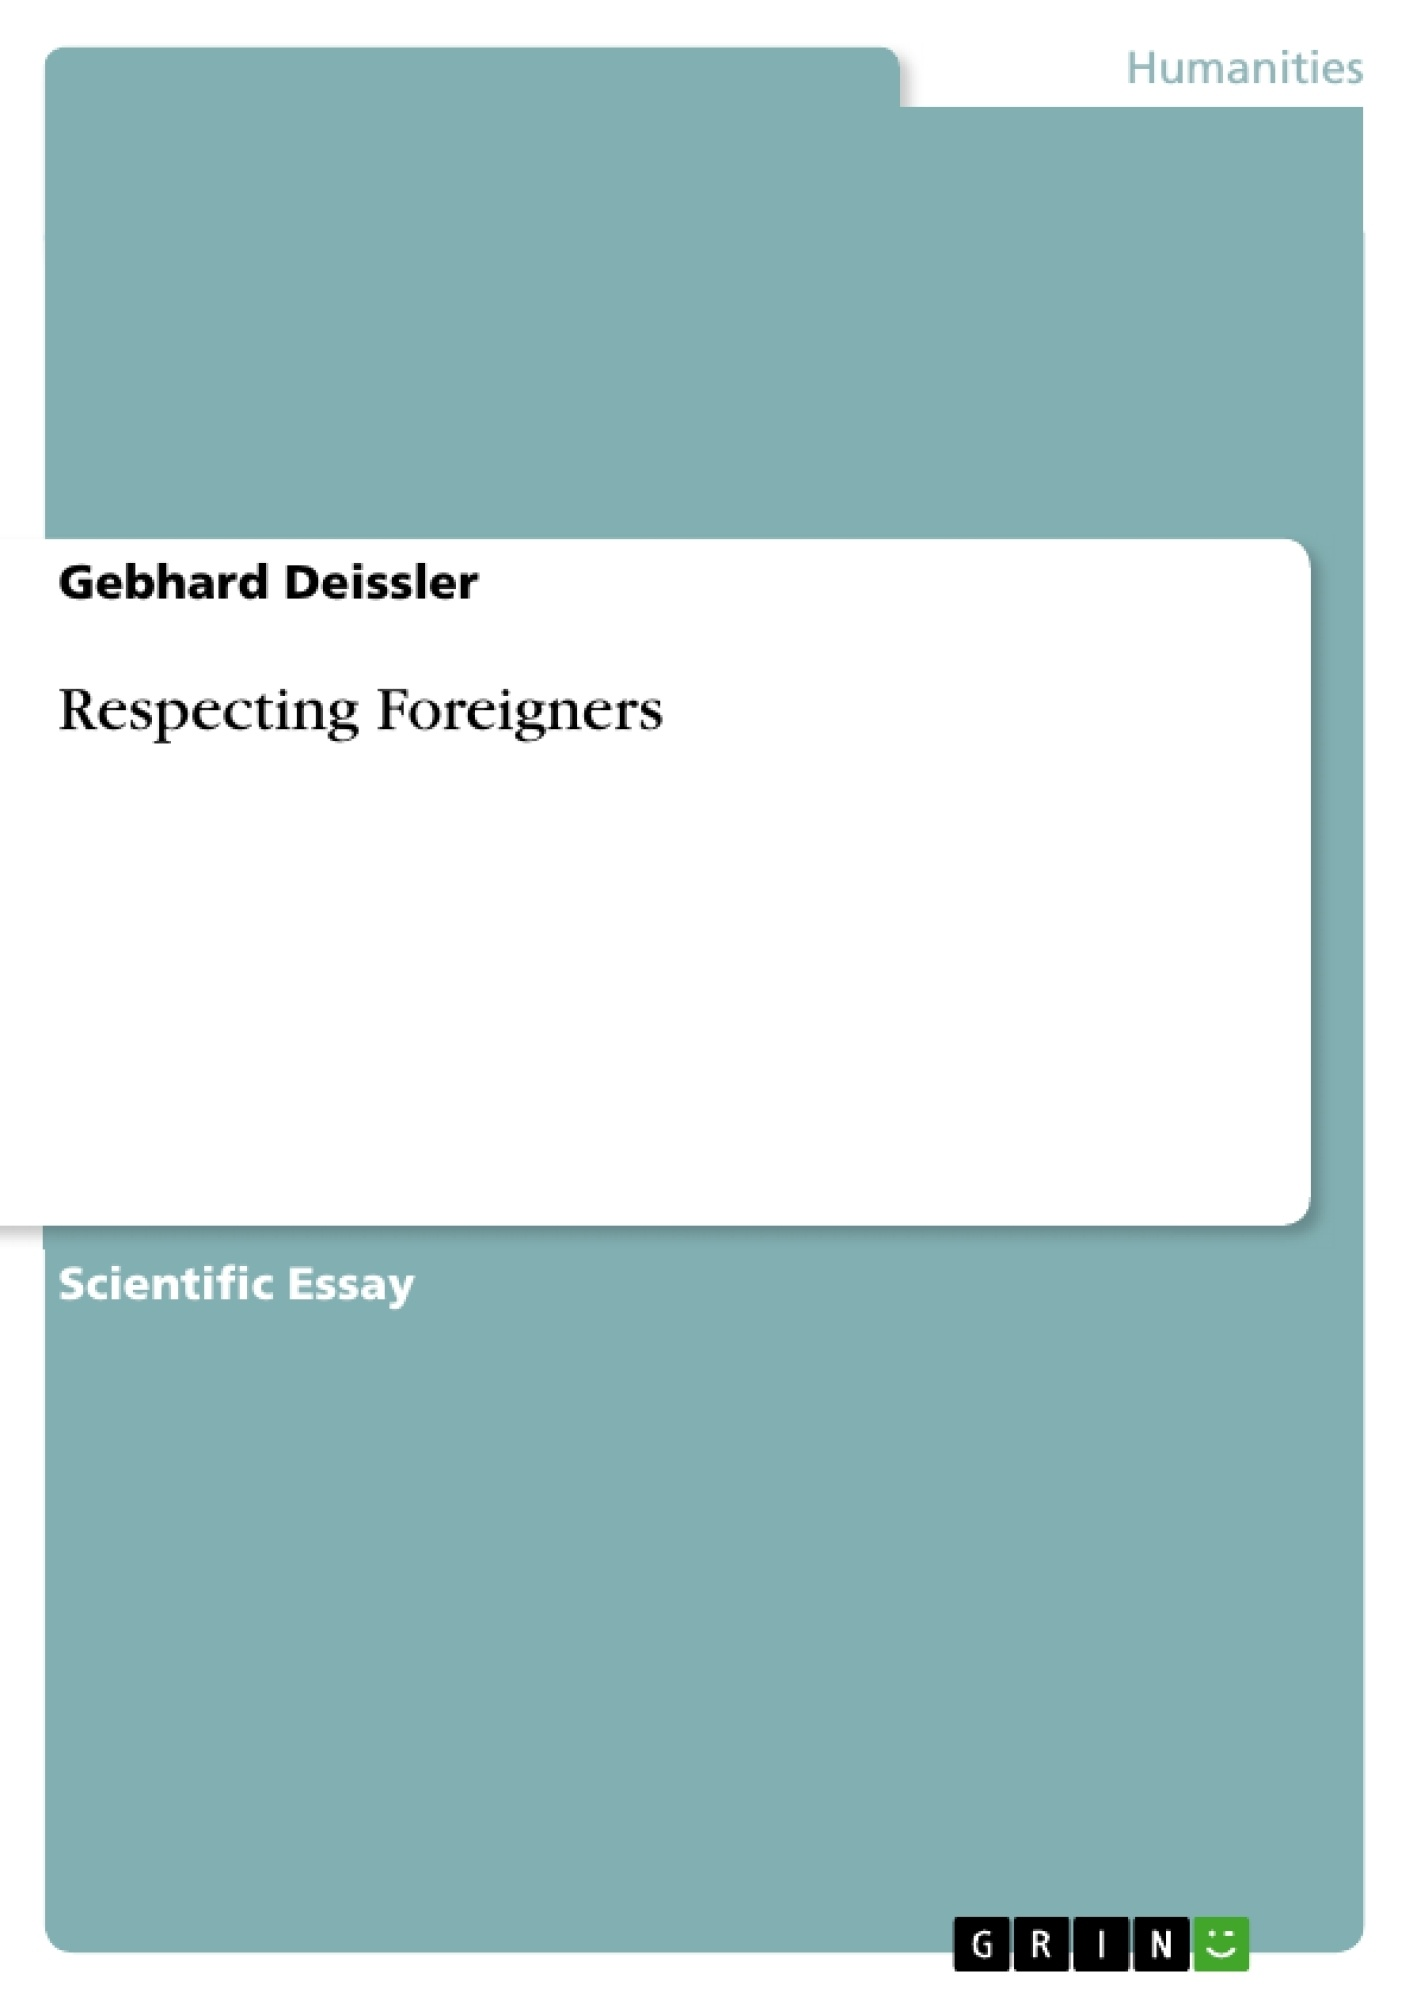 Title: Respecting Foreigners